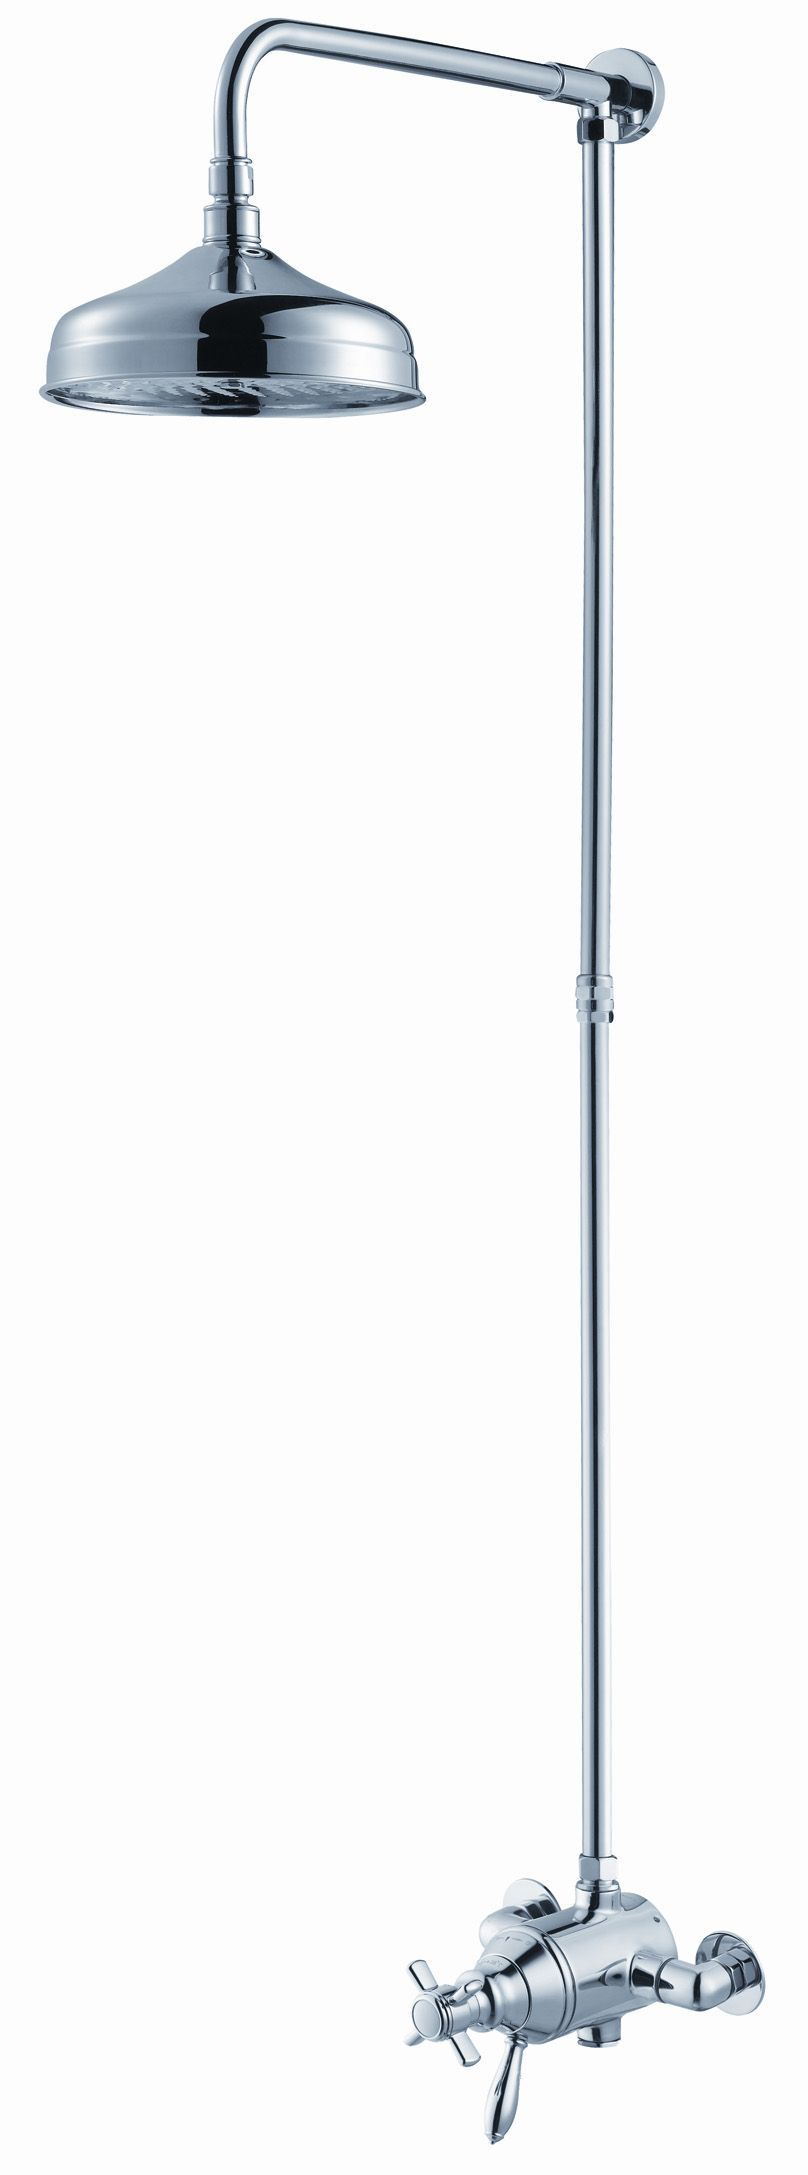 cooke lewis timeless chrome thermostatic concentric mixer shower cooke lewis timeless chrome thermostatic concentric mixer shower